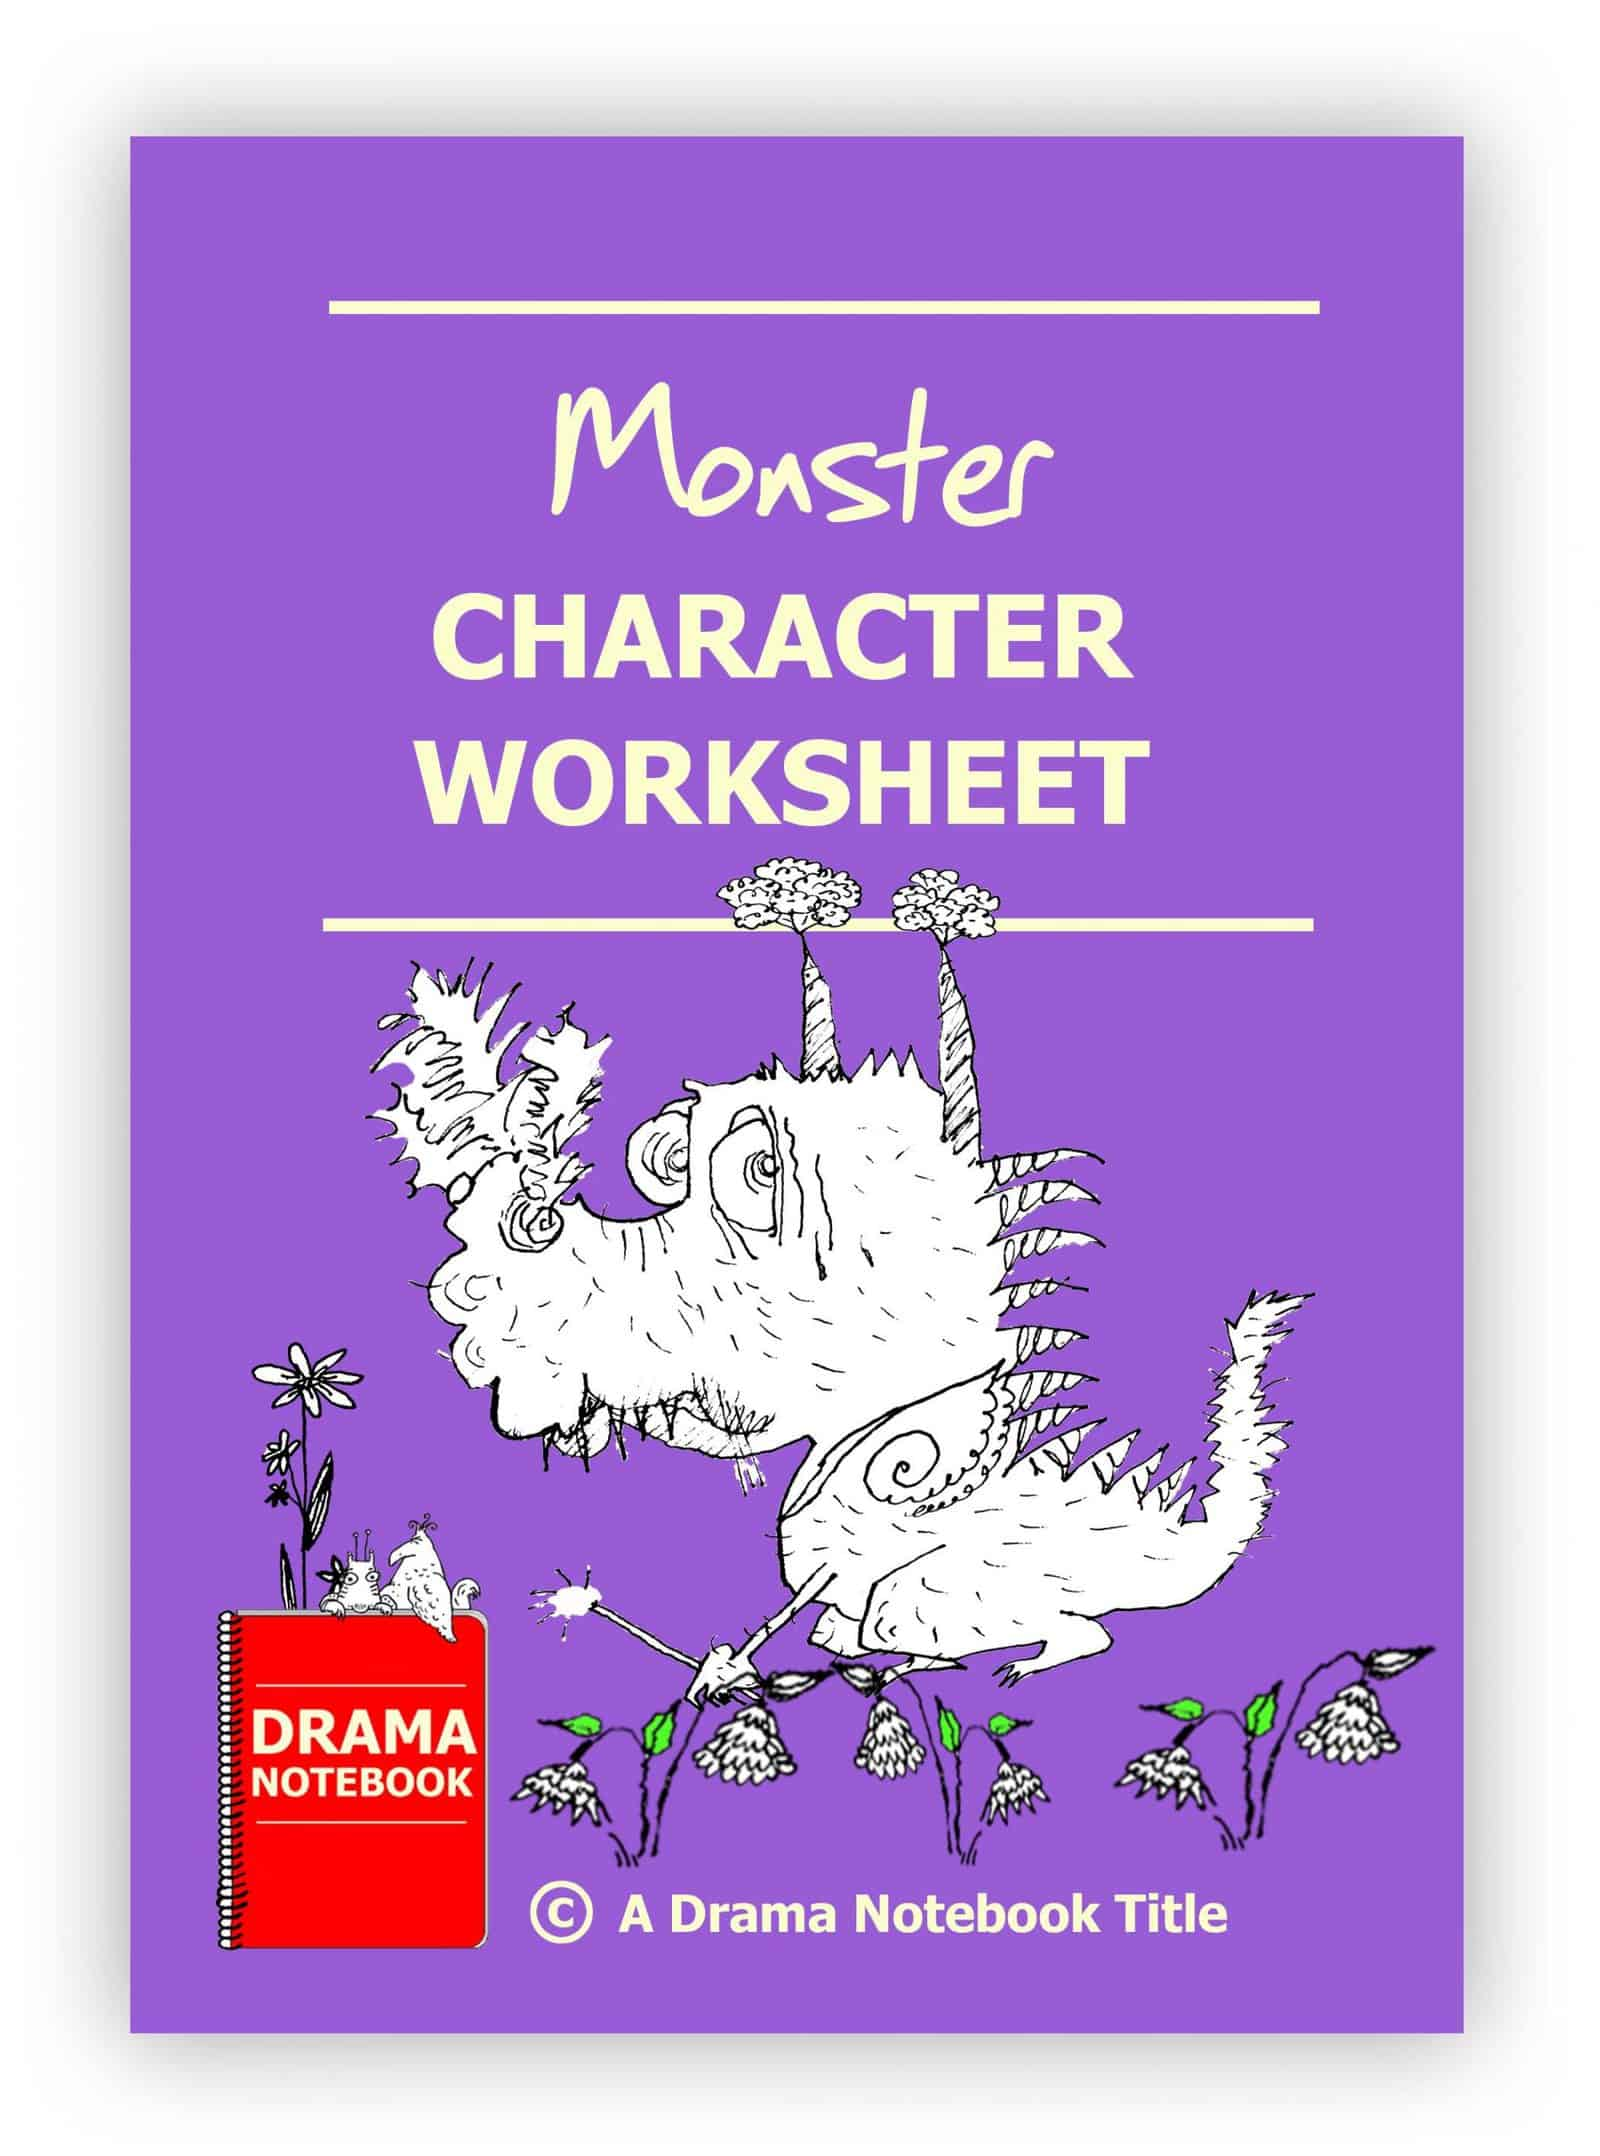 Monster Character Worksheet for Drama Class